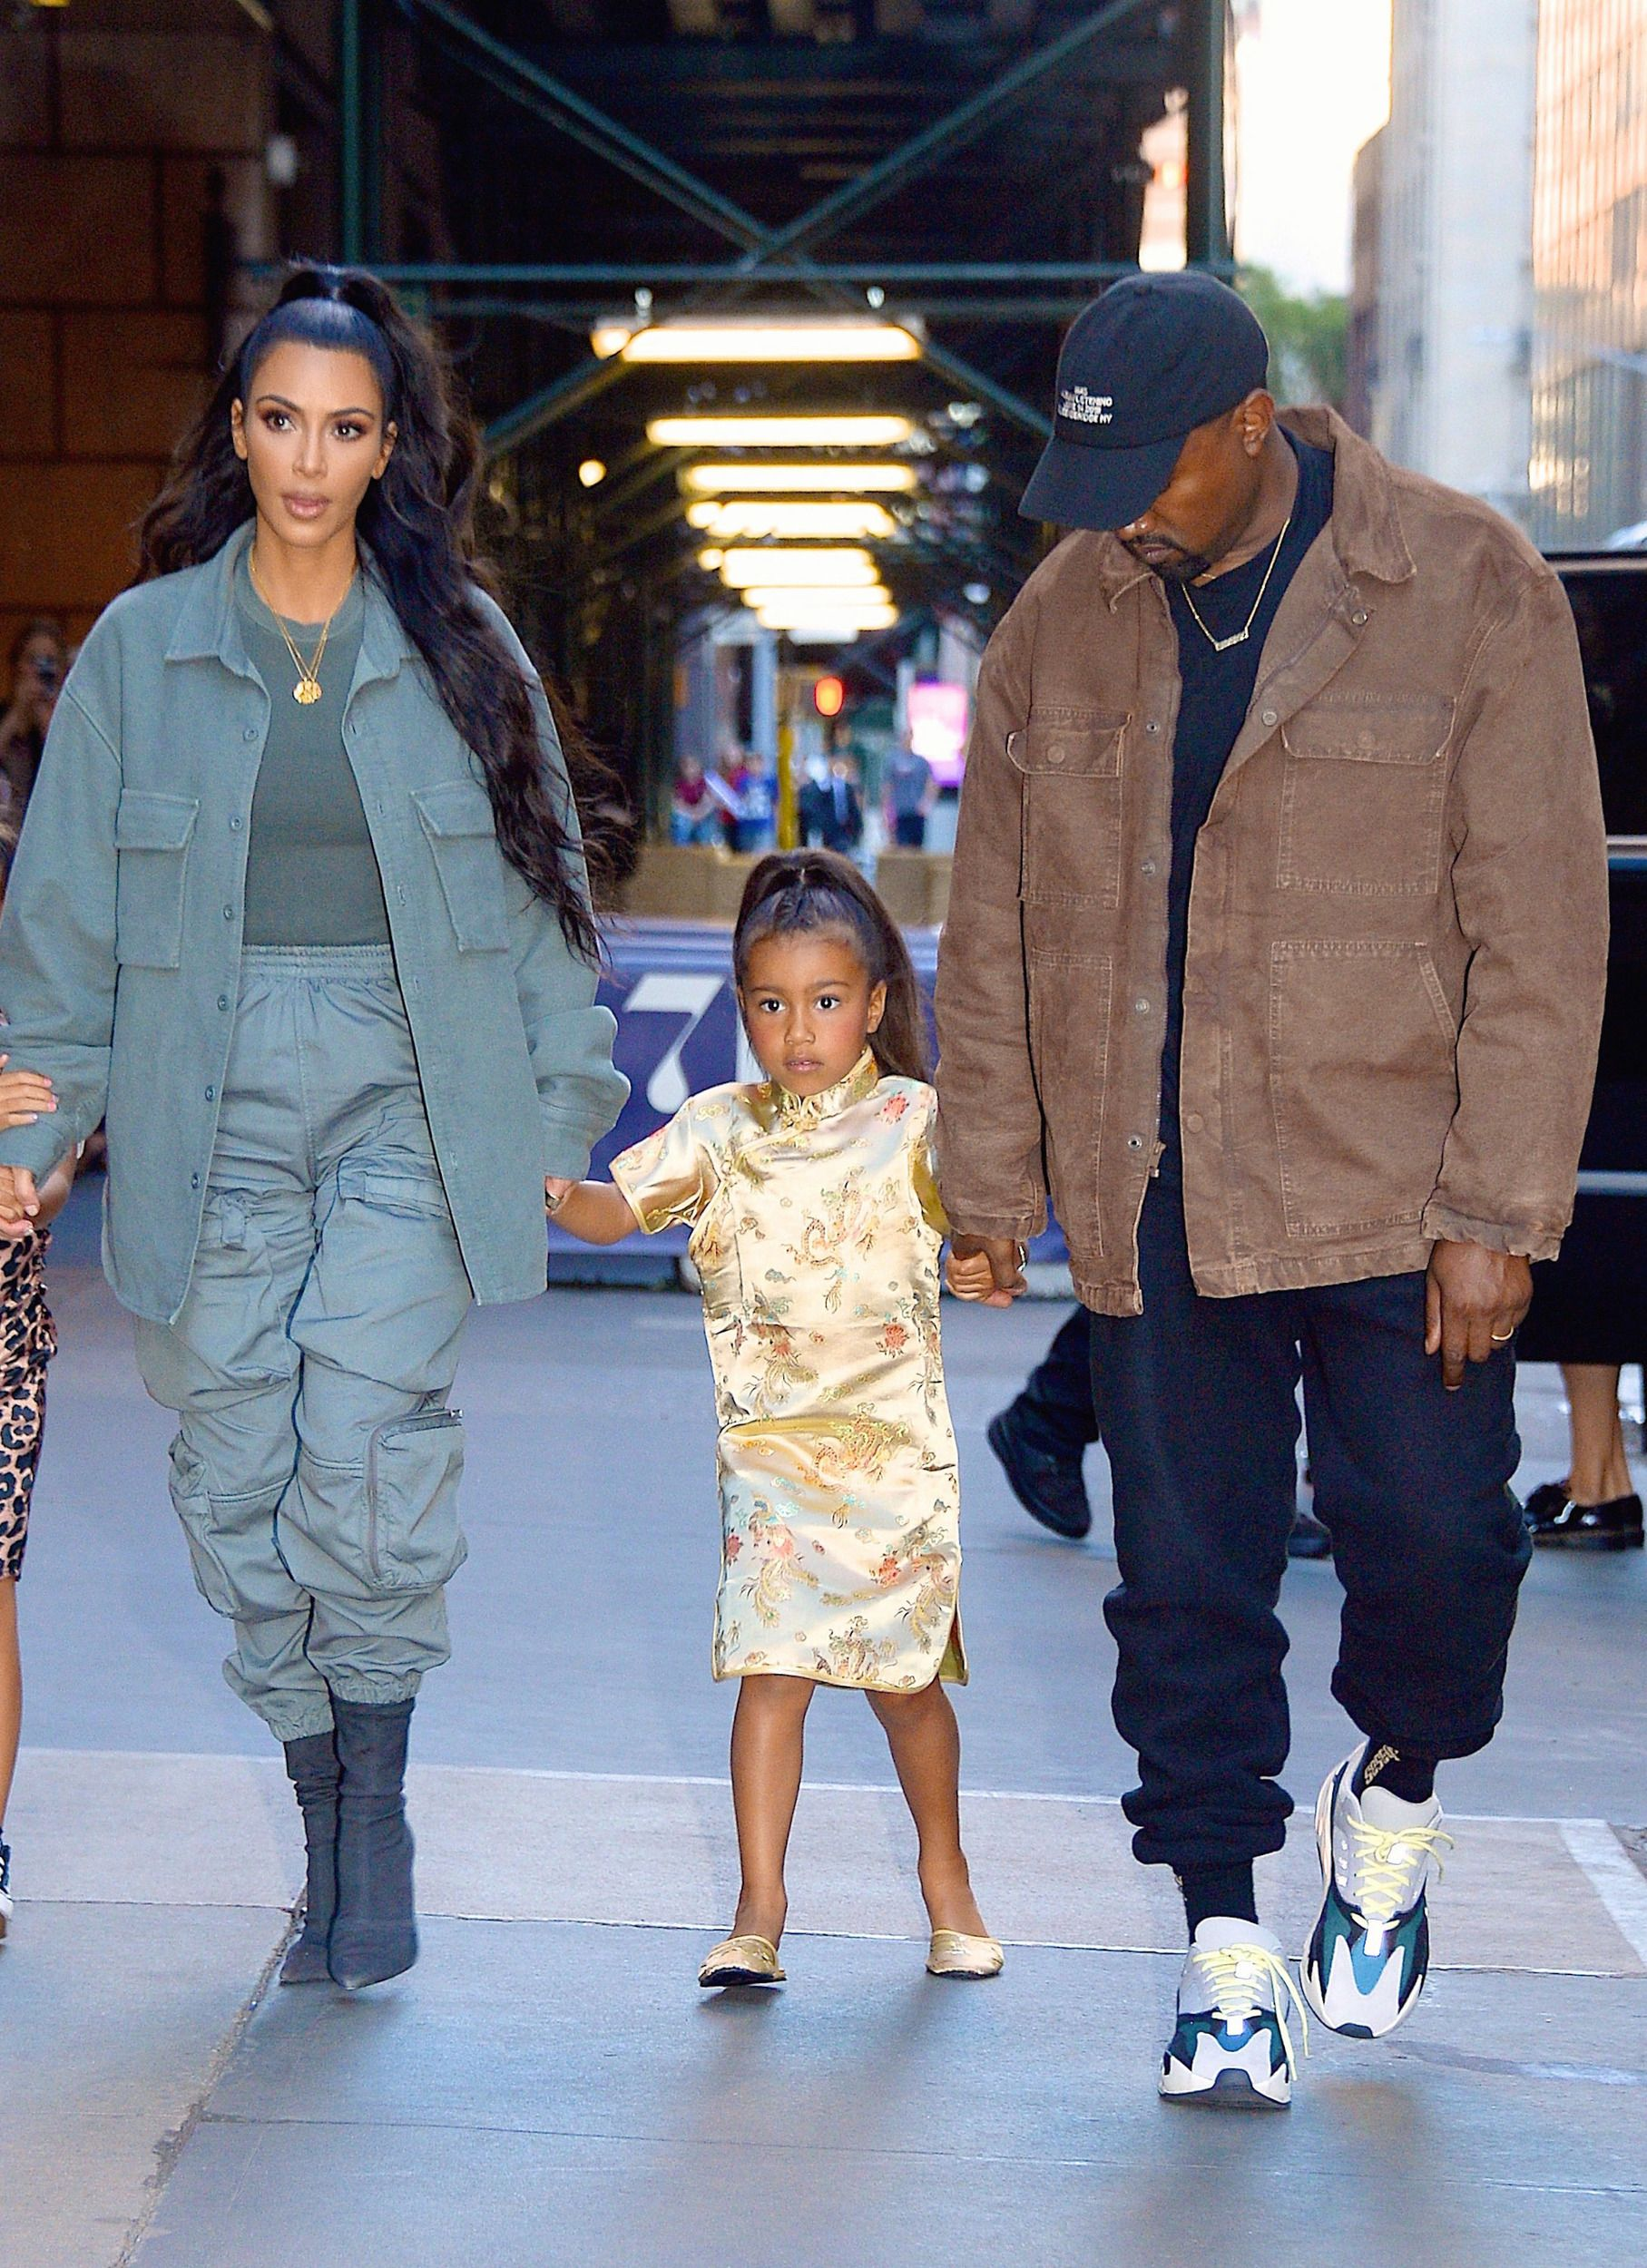 New York Ny June 15 Kanye West Kim Kardashian And Daughter North West Seen Out And About In Manhattan On June 15 2018 In New York City Photo Halloween